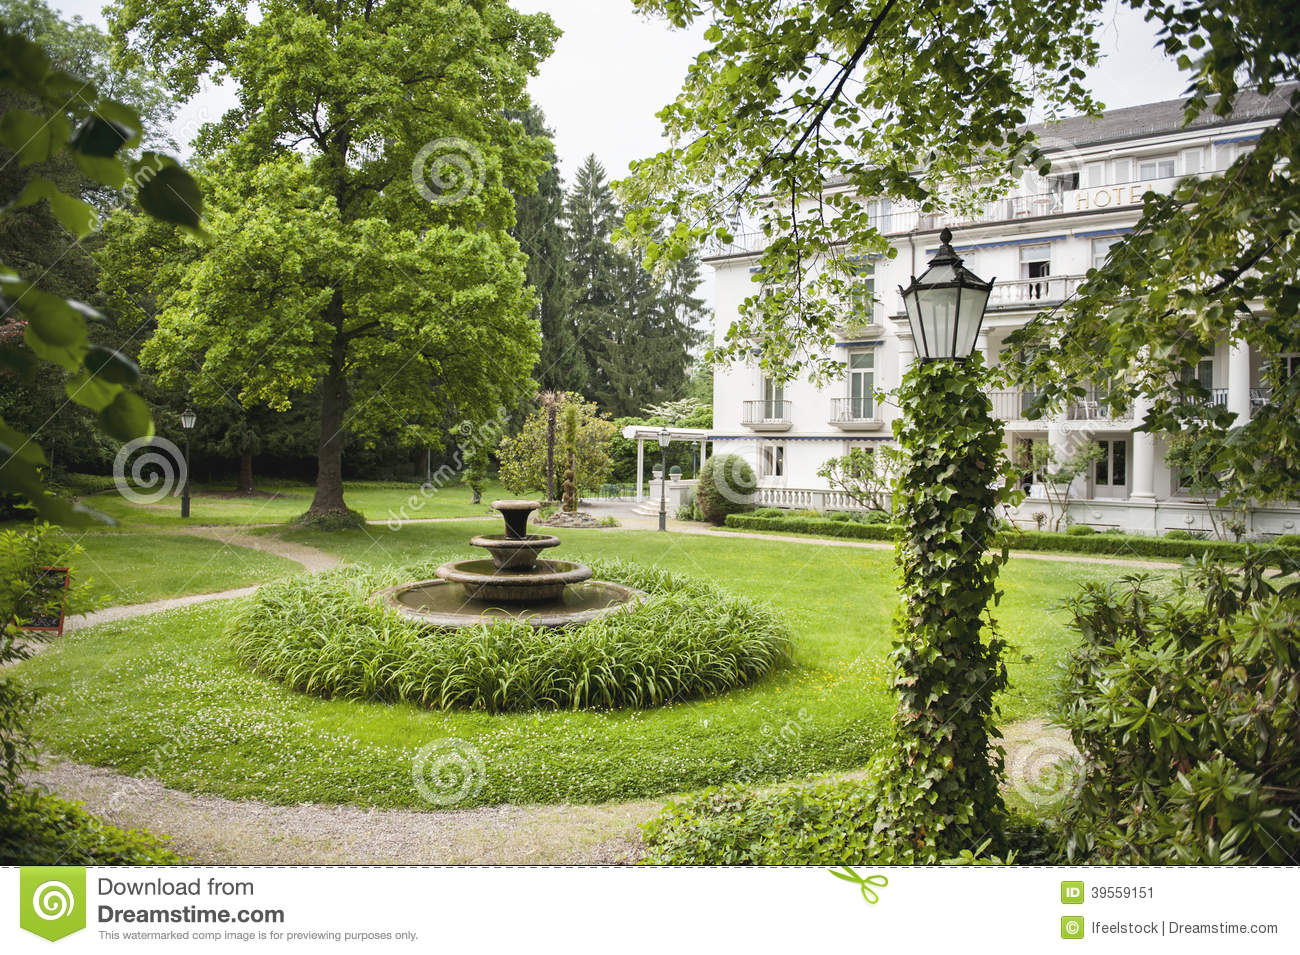 Jardin anglais avec l 39 h tel l 39 arri re plan photo stock for Conception jardin anglais